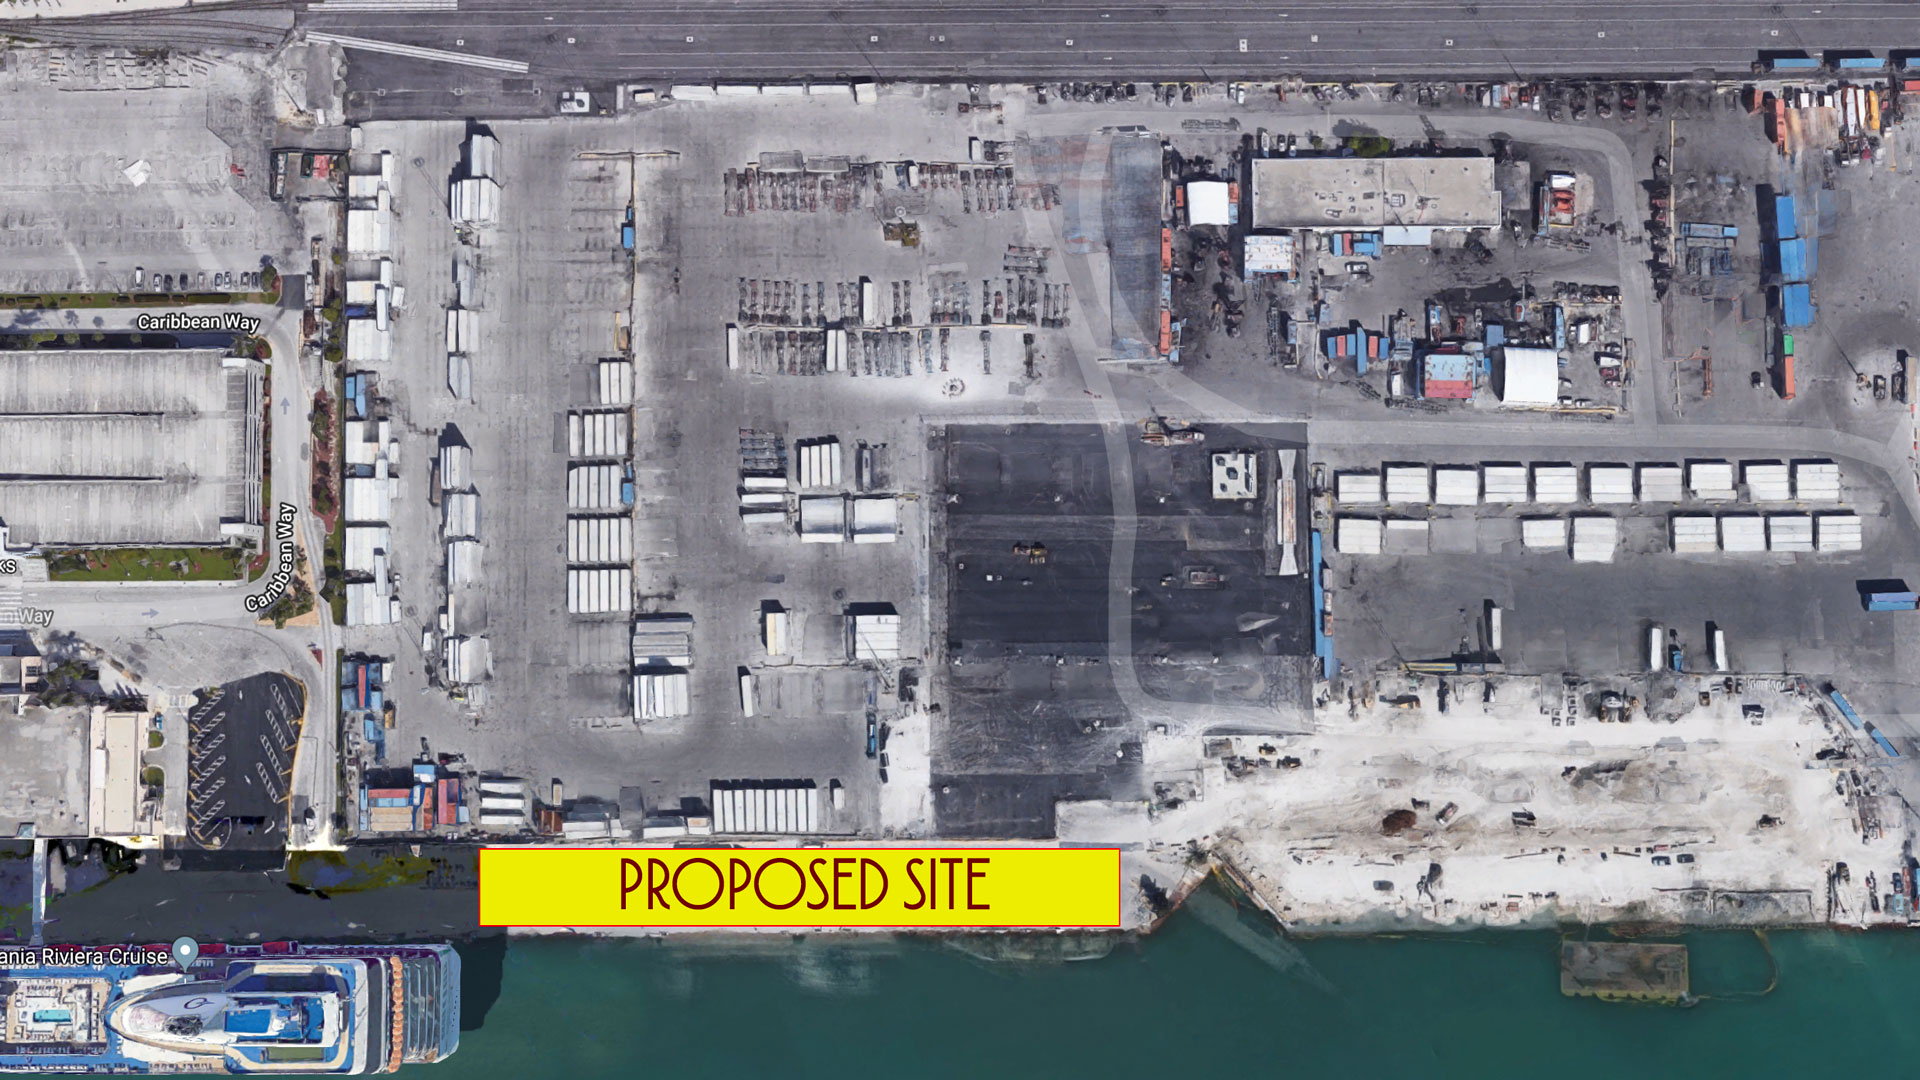 PortMiami DCL Terminal Proposed Site 2